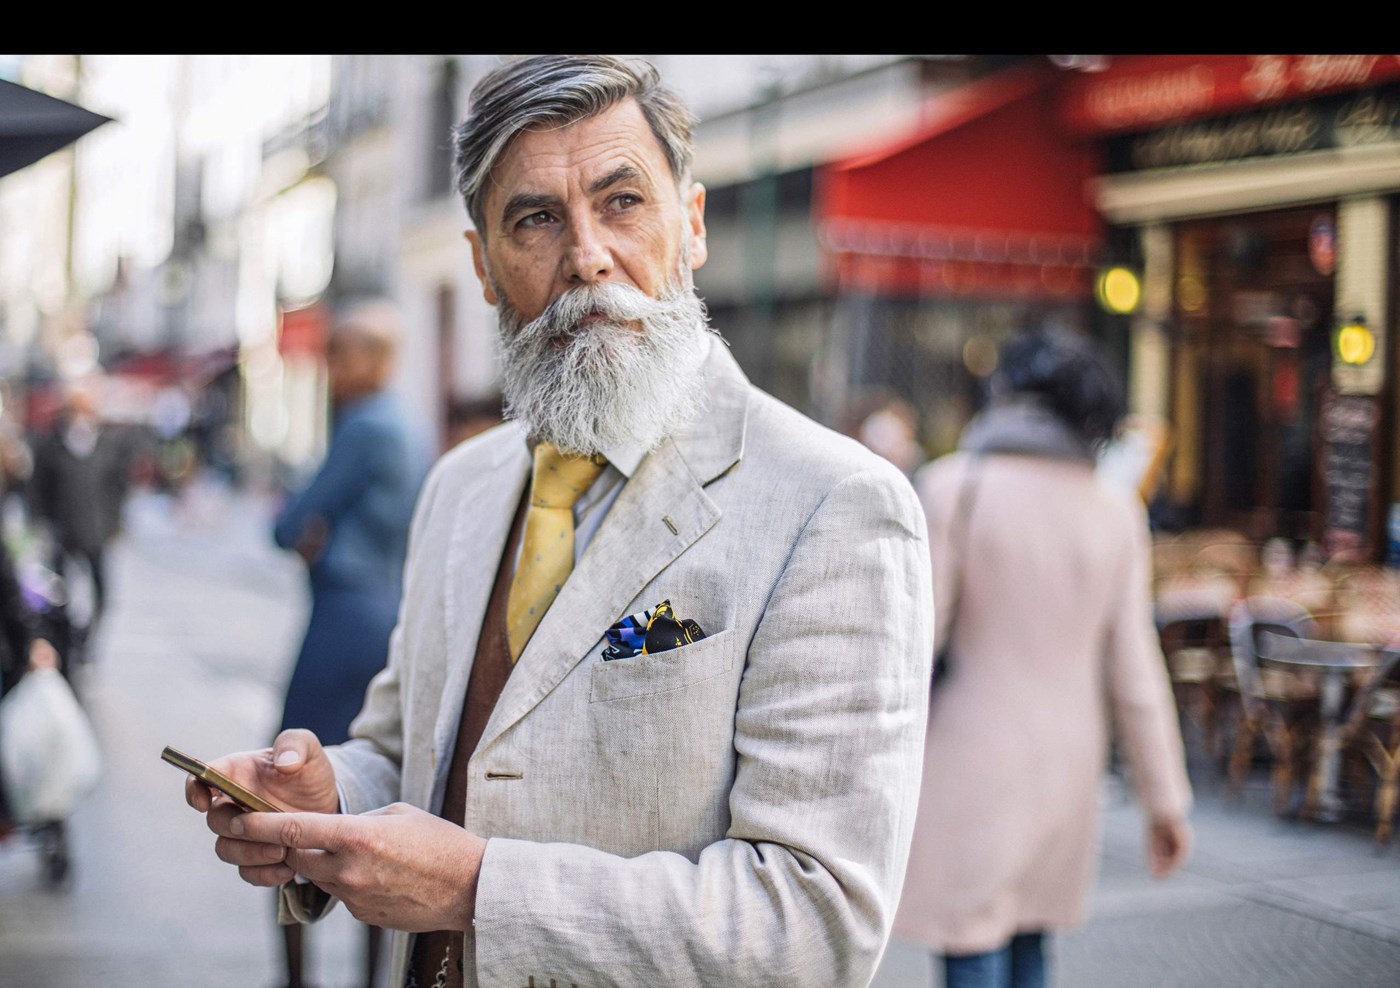 Male with grey beard in suit on a mobile phone